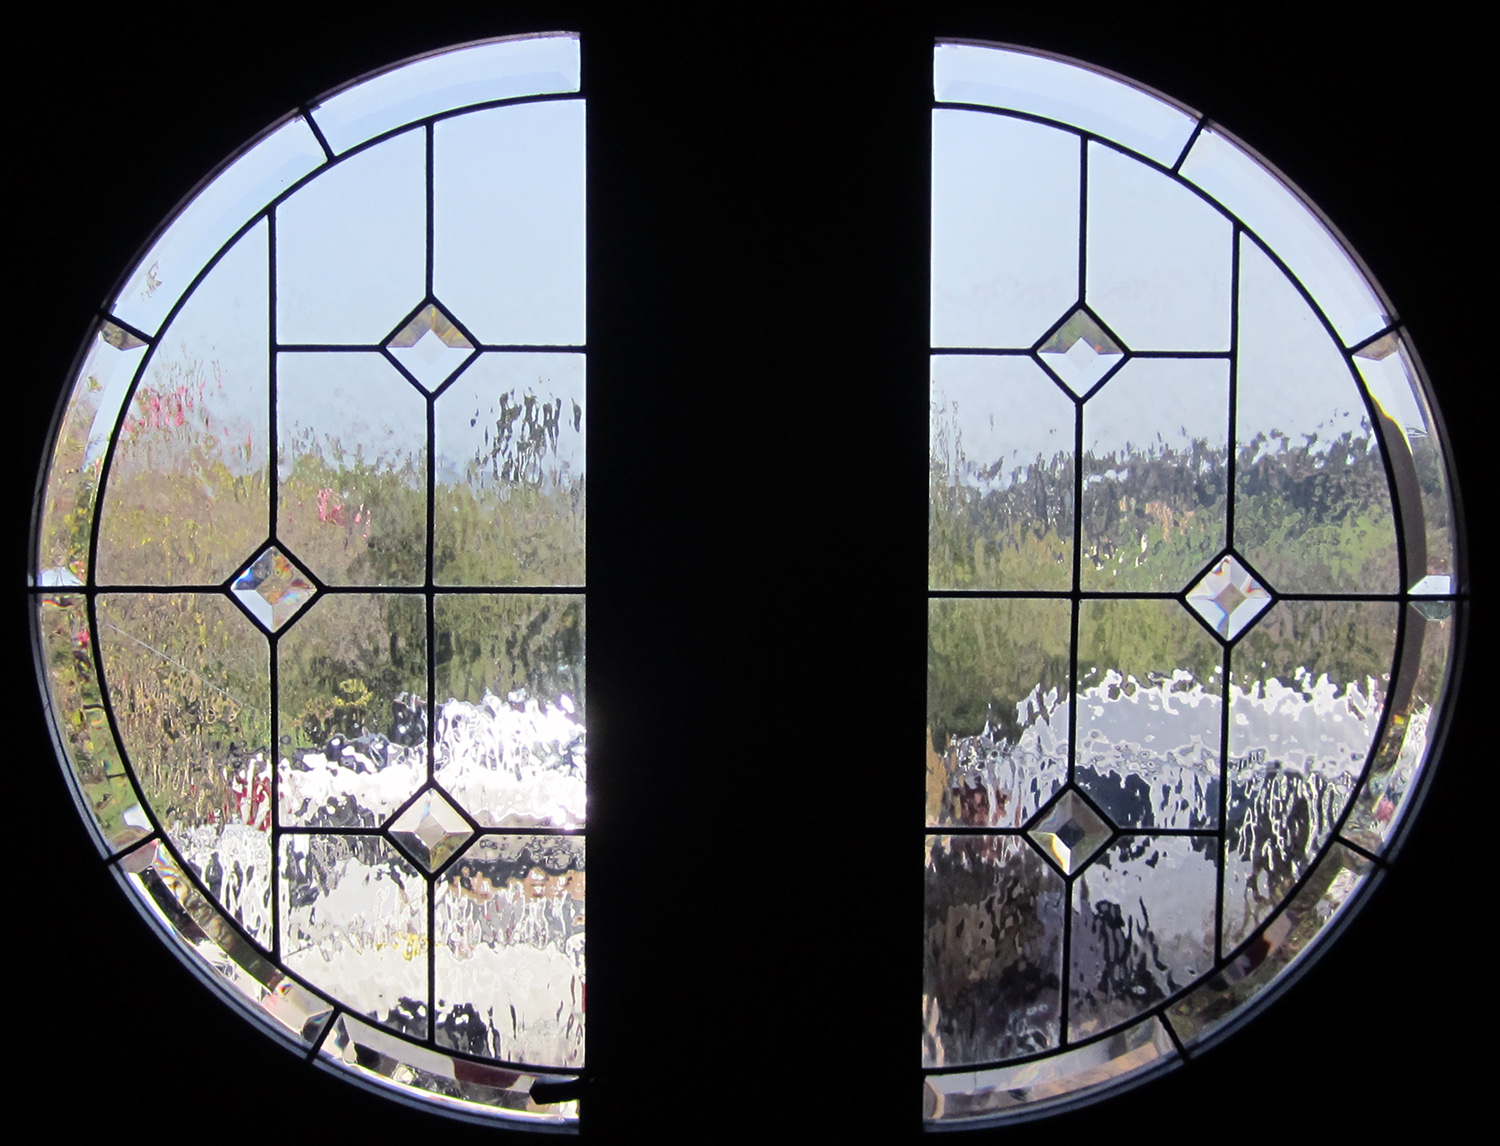 clear textured glass water glass geometric beveled square pencil bevel clear texture leaded glass stained glass window palo alto atherton california san francisco san jose legacy glass.jpg